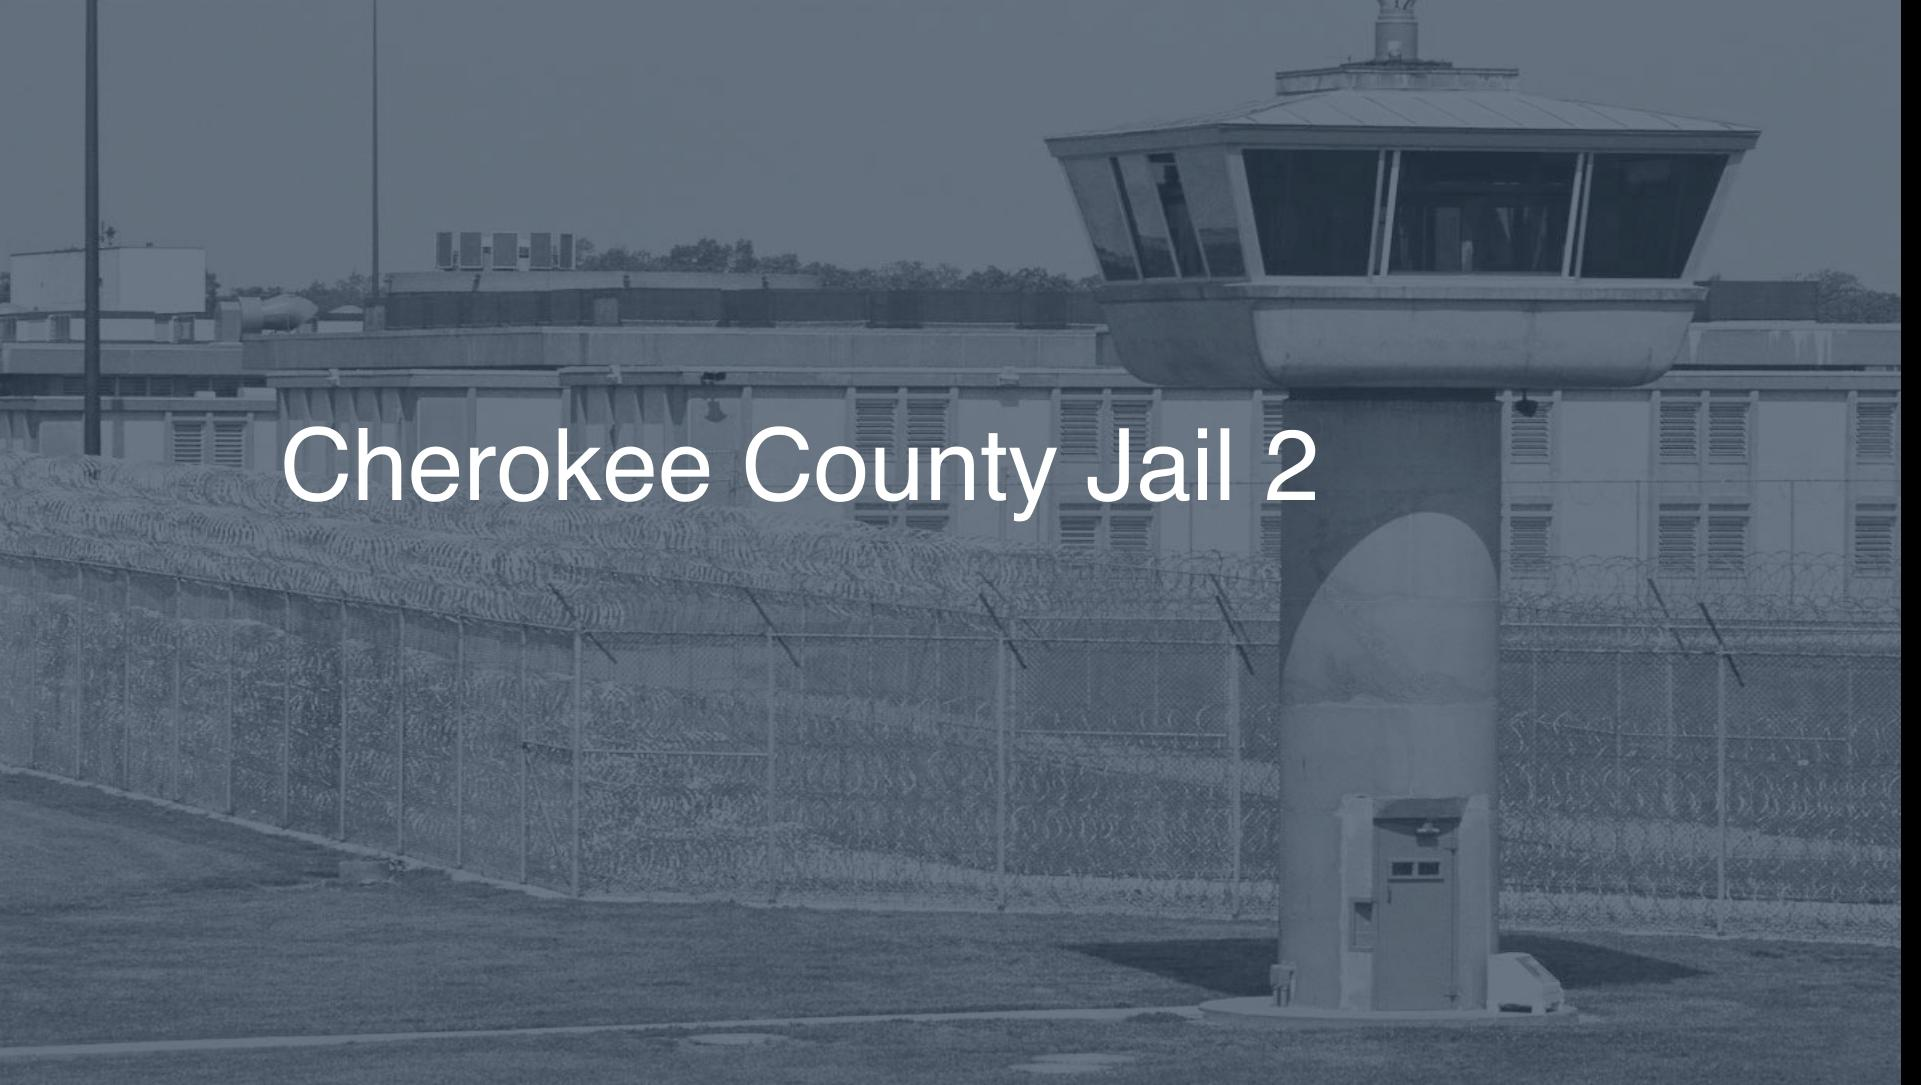 Cherokee County Jail correctional facility picture